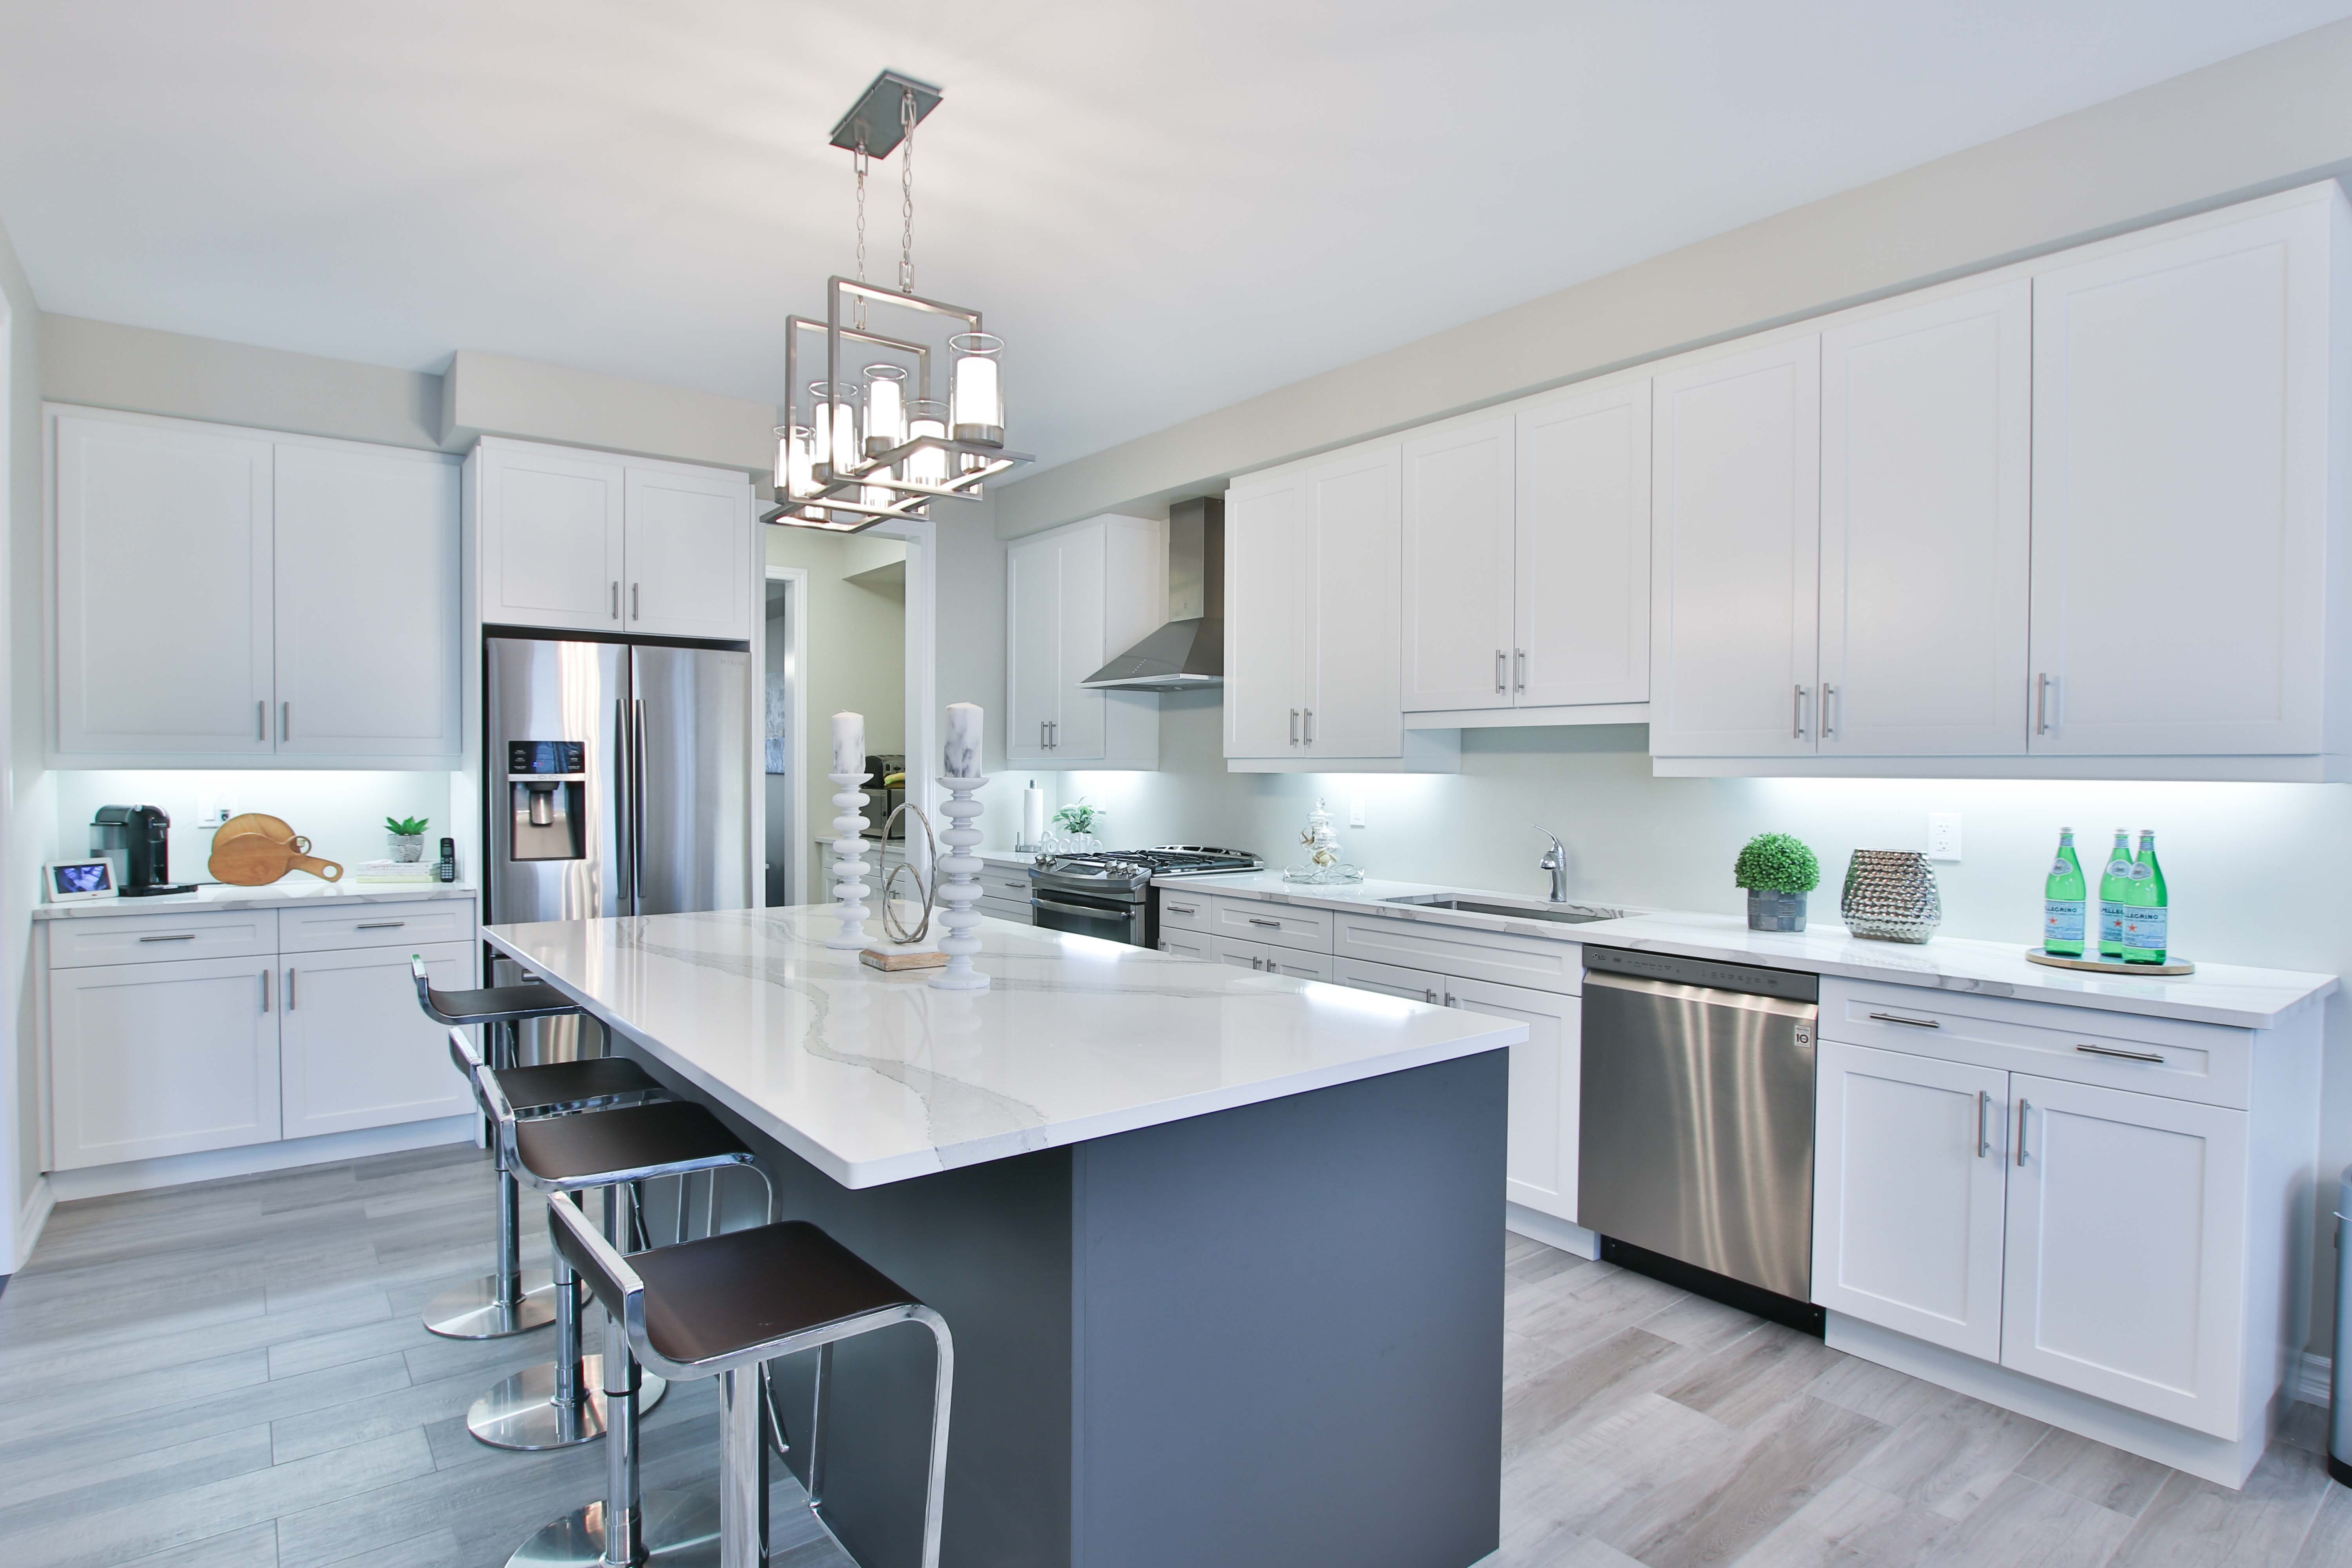 Covid 19 Cleaning Services In Montreal